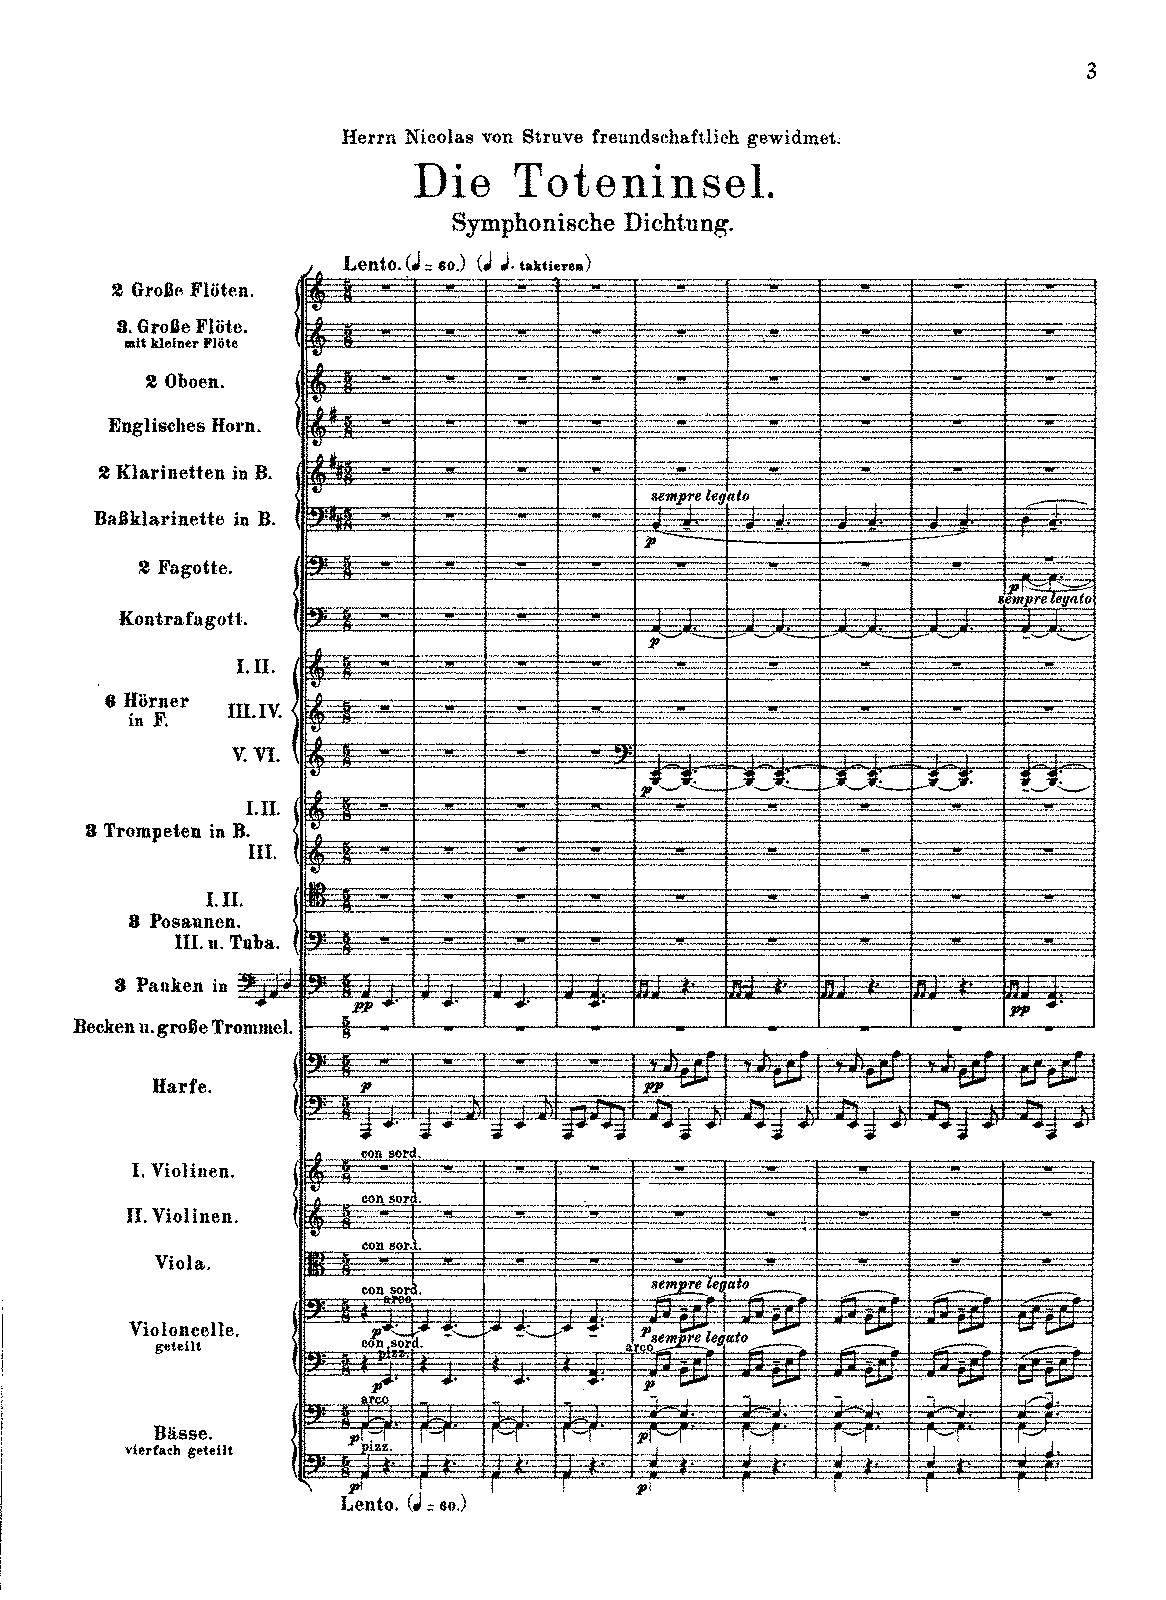 PMLP45655-Rachmaninoff - The Isle of Death, Op. 29 (orch. score).pdf